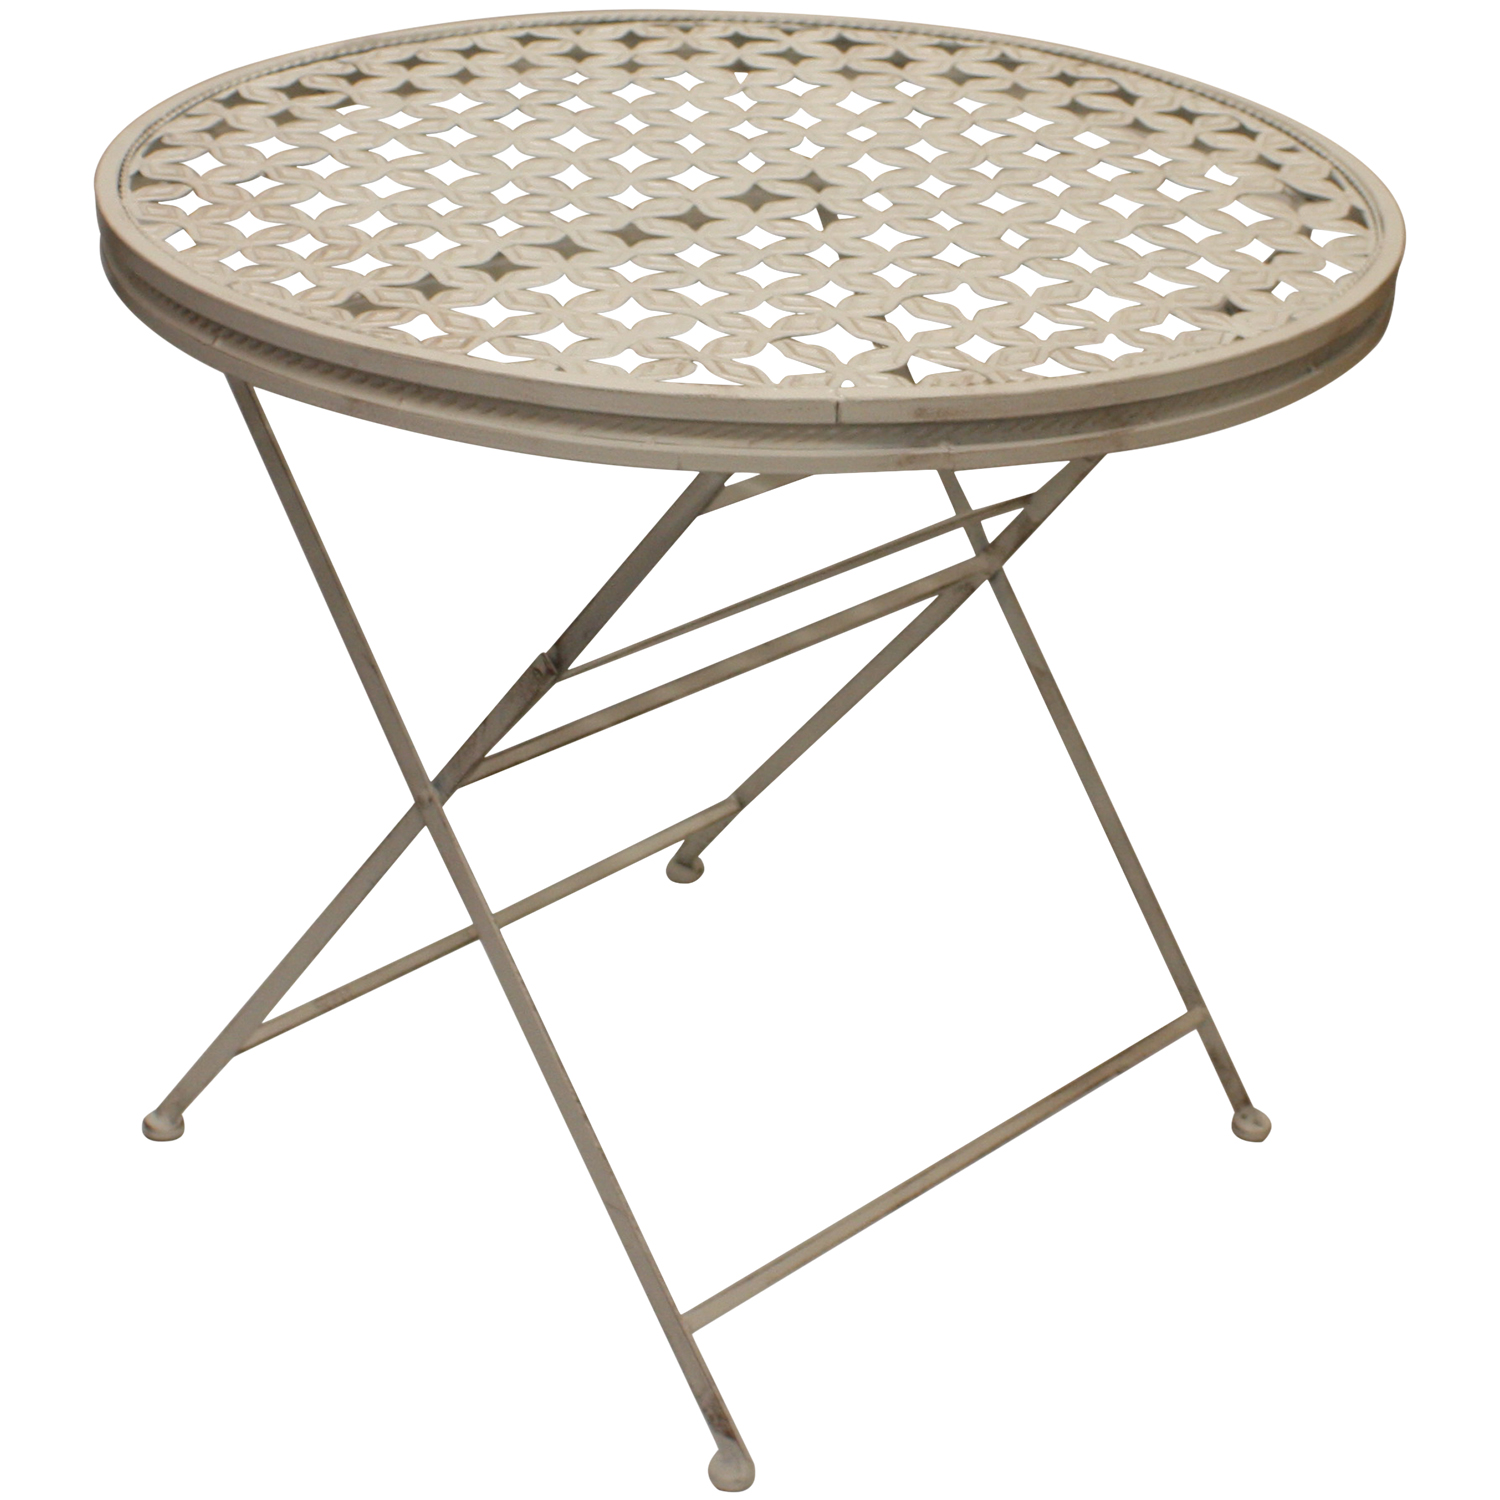 round folding metal garden patio dining table outdoor furniture